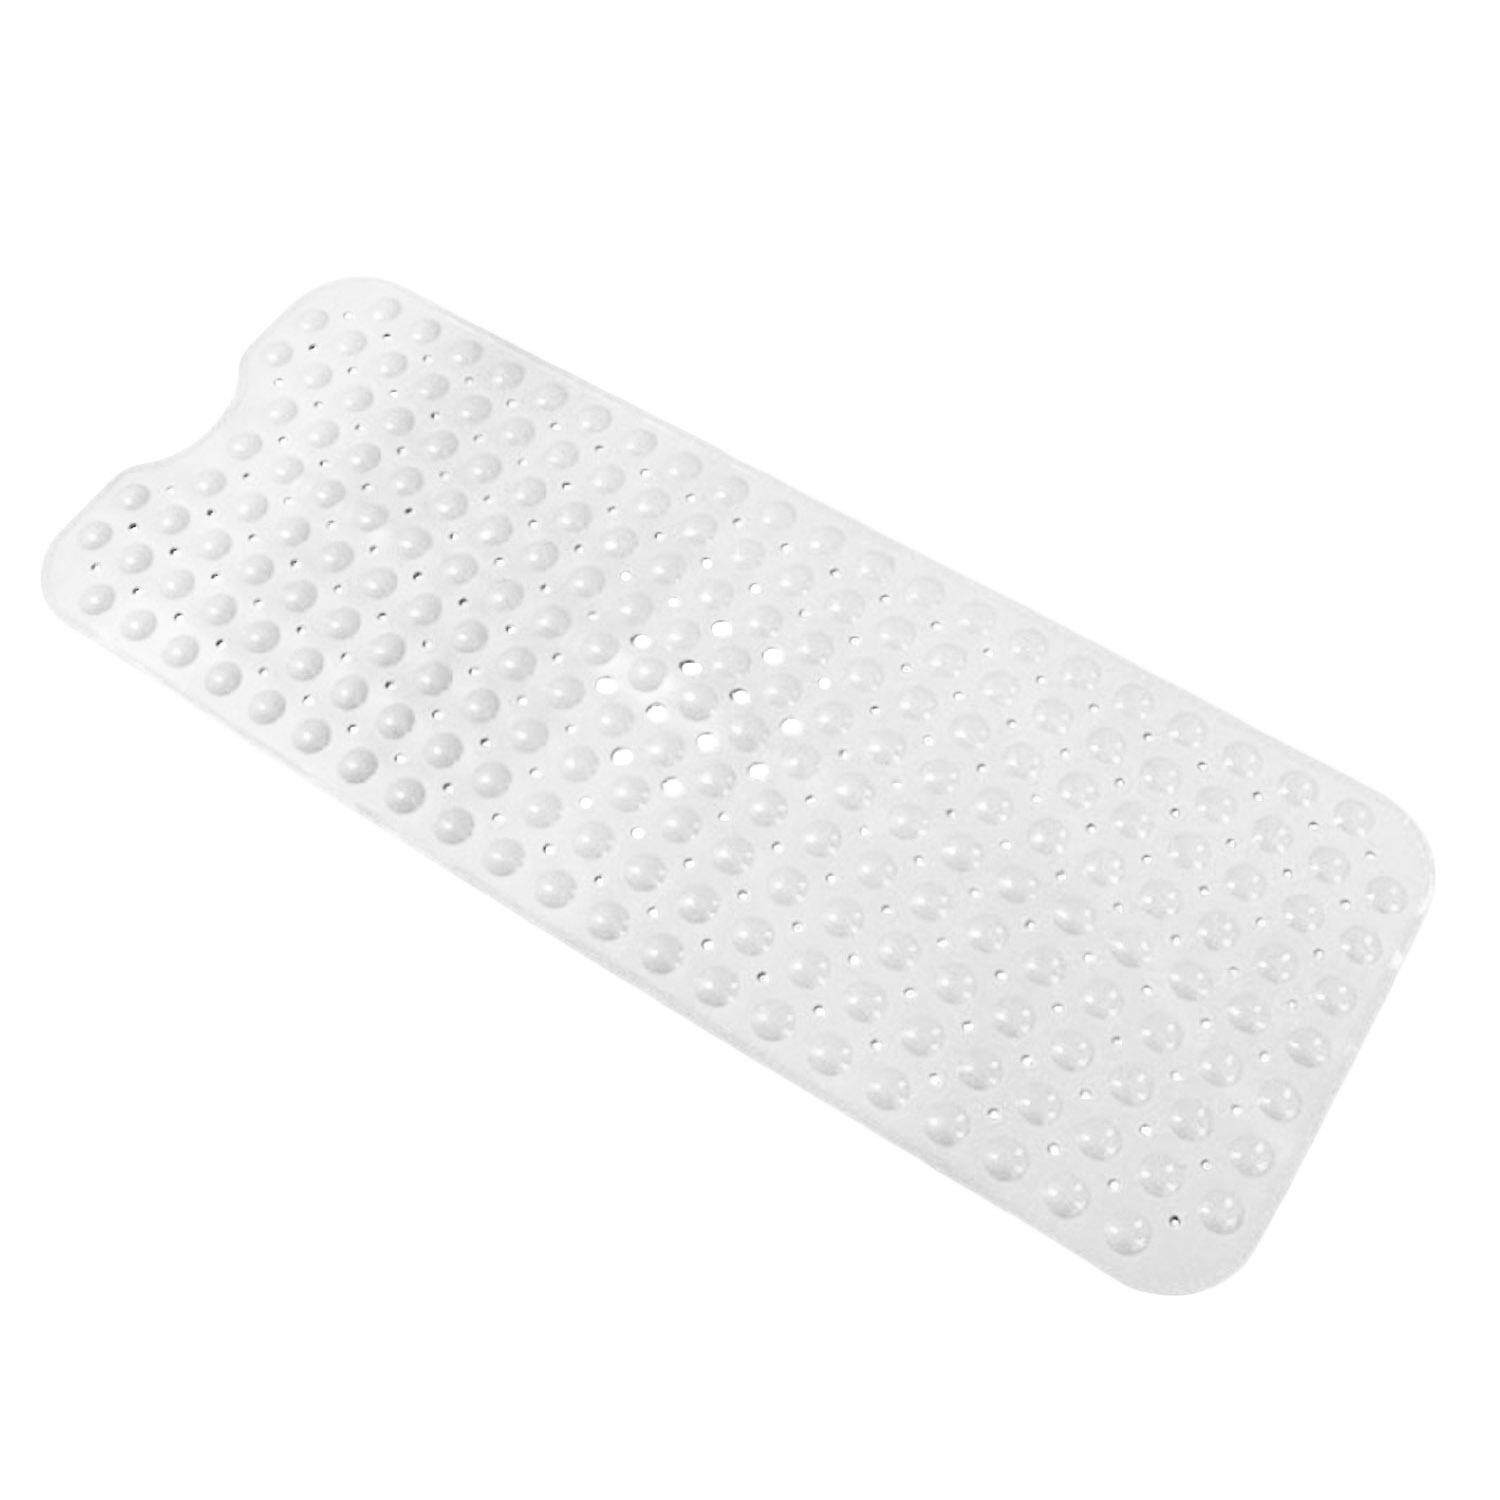 Long Pvc Anti Slip Home Bathroom Safety Massage Bath Shower Mat With Strong Suction Cup Bathroom Supplies 39 X 16inch White By Duha.